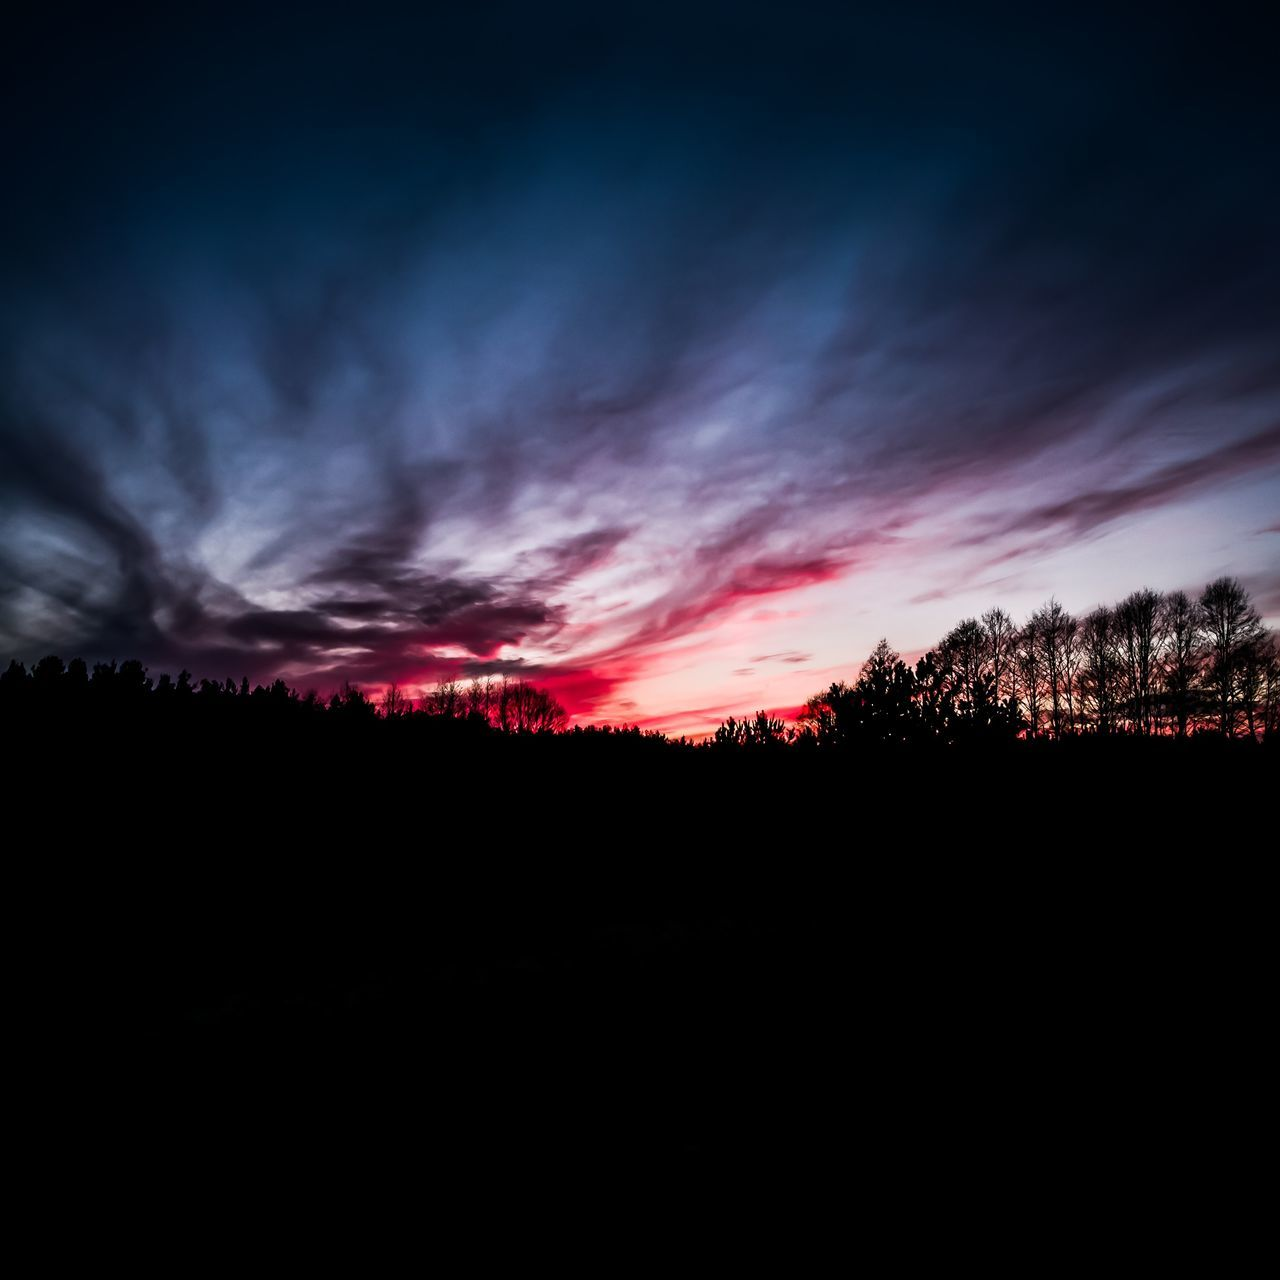 Silhouette Red Nature Sunset Landscape Cloud - Sky Scenics No People Natural Disaster Sky Beauty In Nature Backgrounds Outdoors Tree Day First Eyeem Photo EyeEm Best Shots - Landscape EyeEm Best Shots